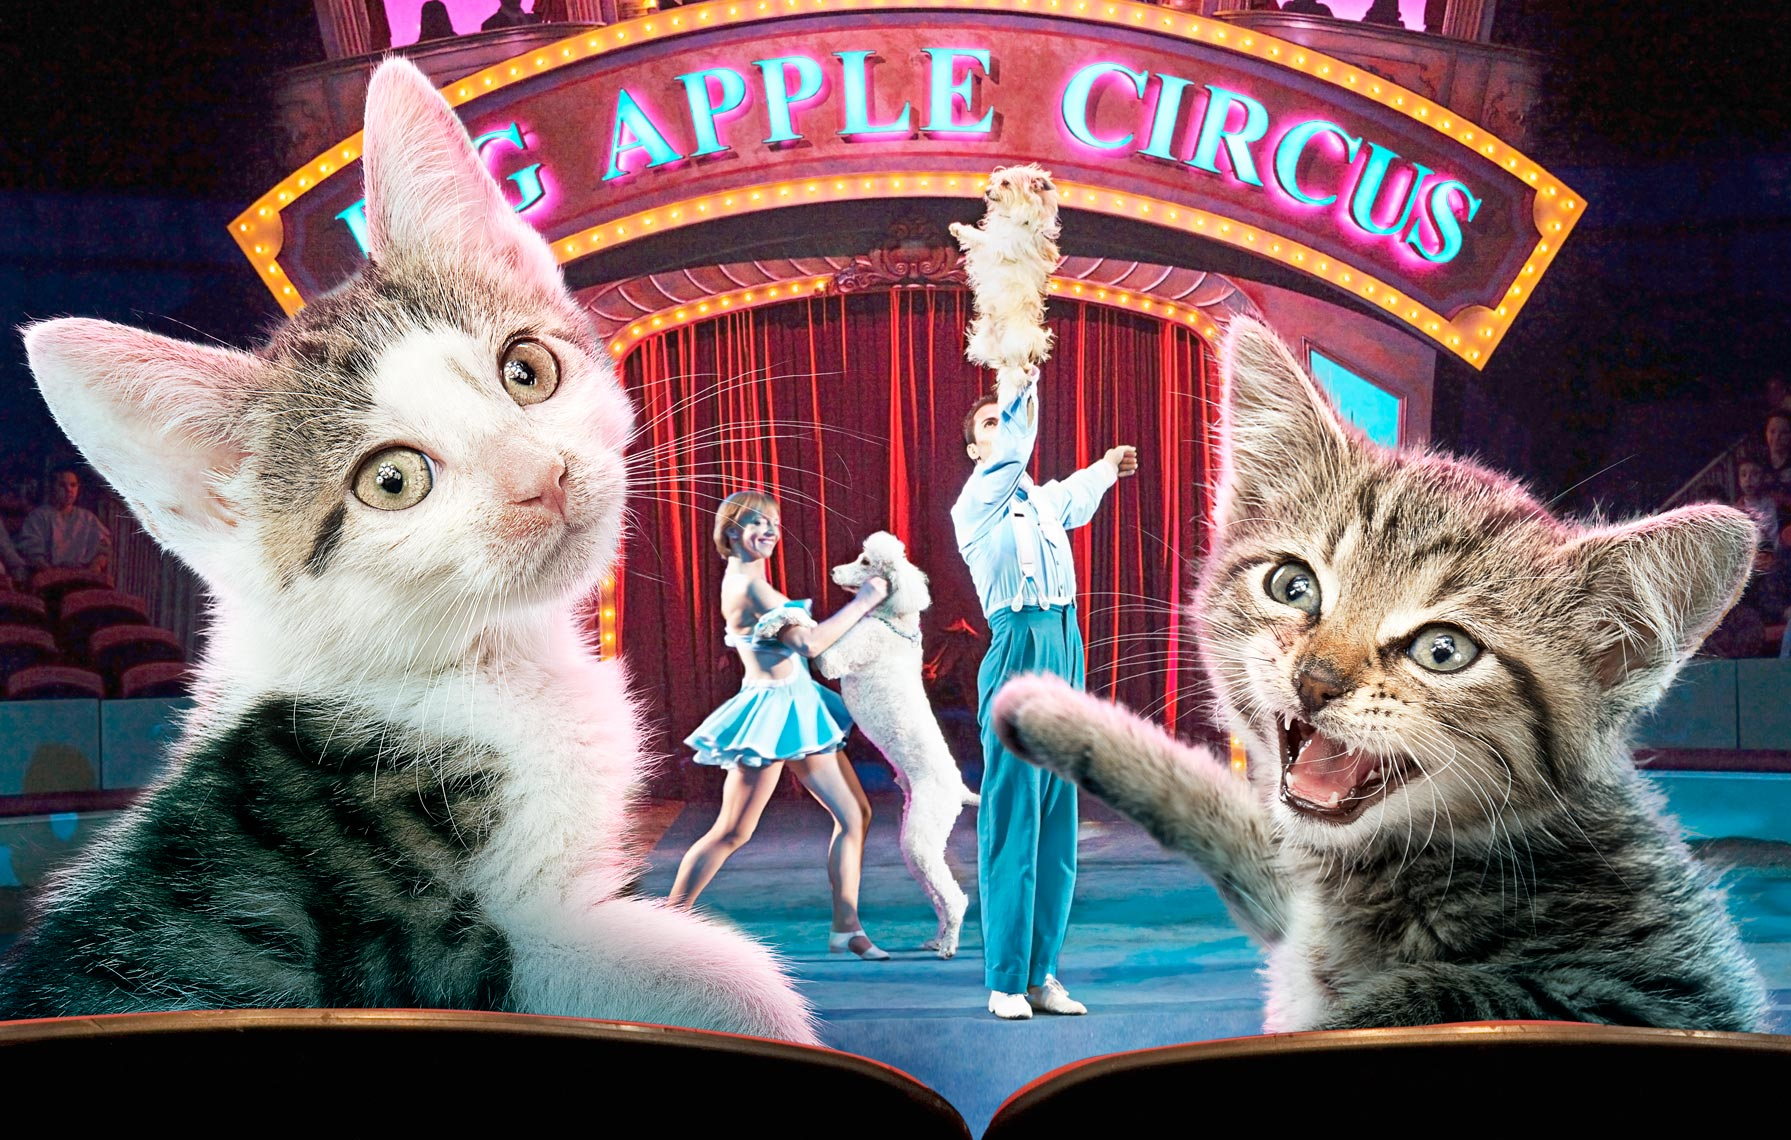 Kittens at the Circus